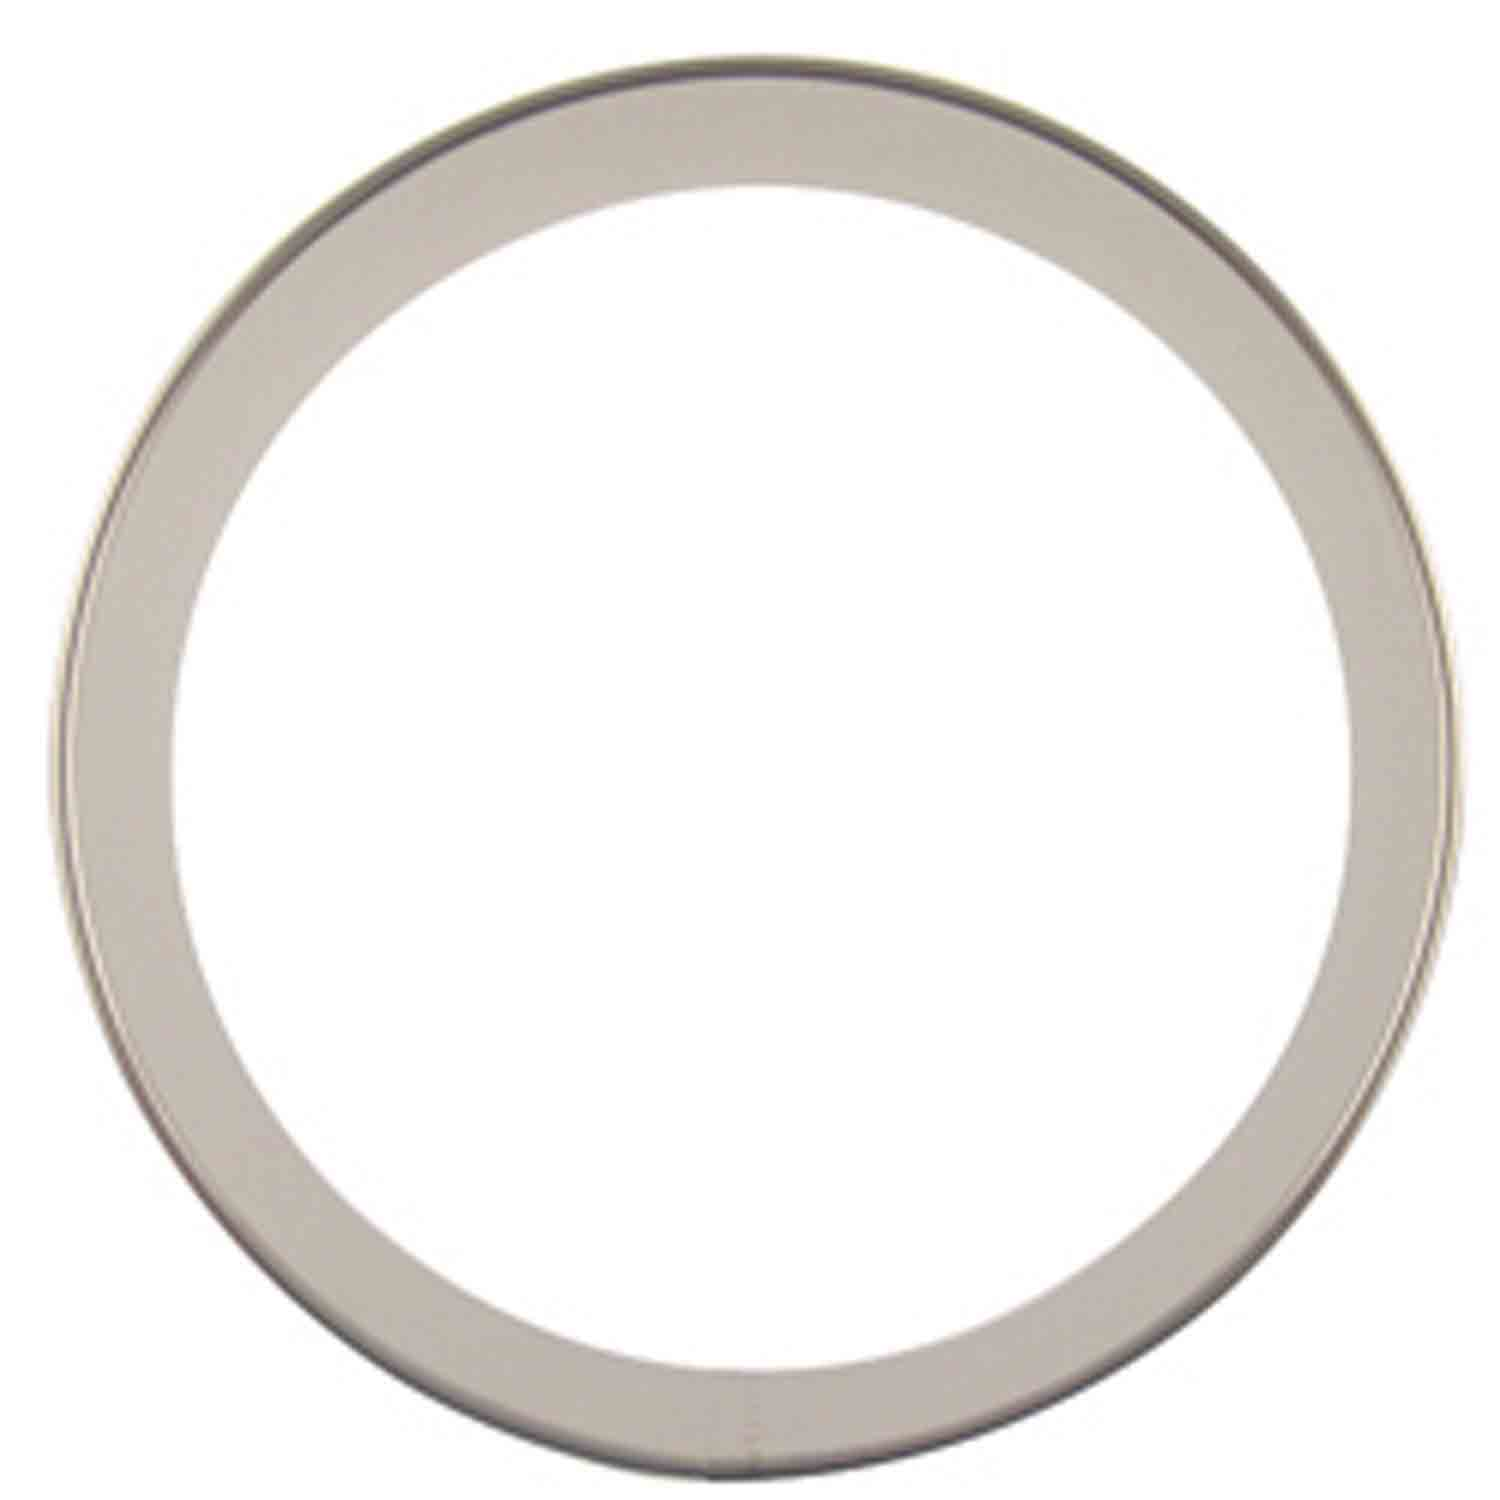 Biscuit Cutter Plain-3 1/2""